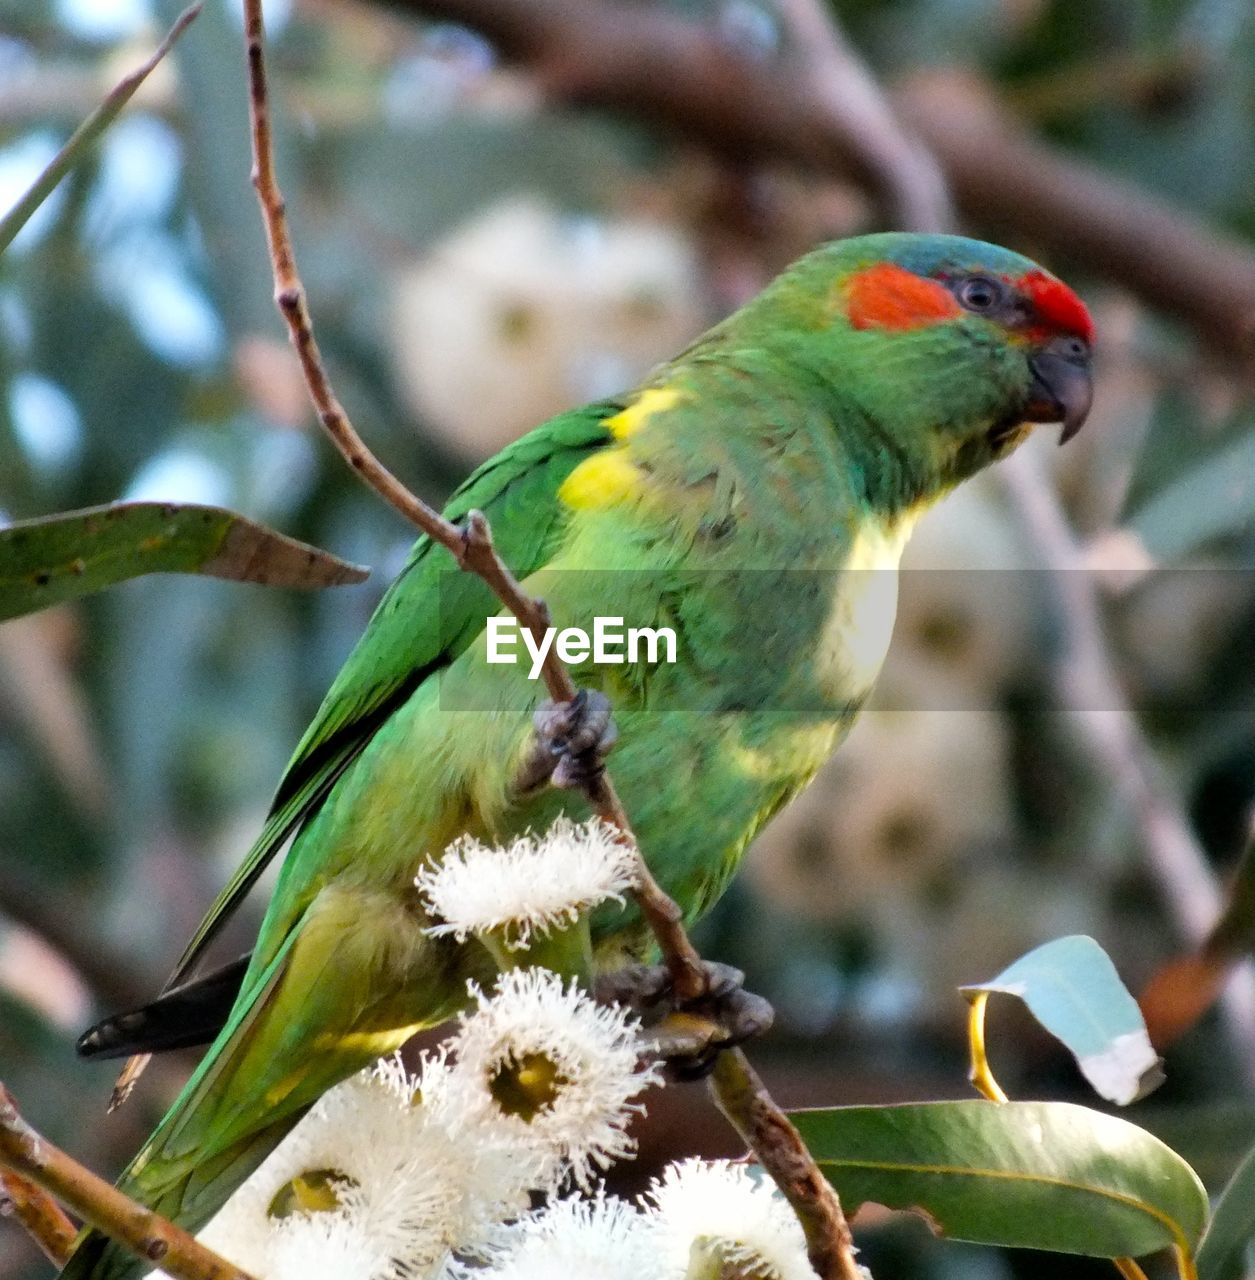 bird, animal themes, animal, vertebrate, animal wildlife, animals in the wild, perching, focus on foreground, plant, close-up, branch, one animal, tree, day, no people, nature, plant part, leaf, beauty in nature, parrot